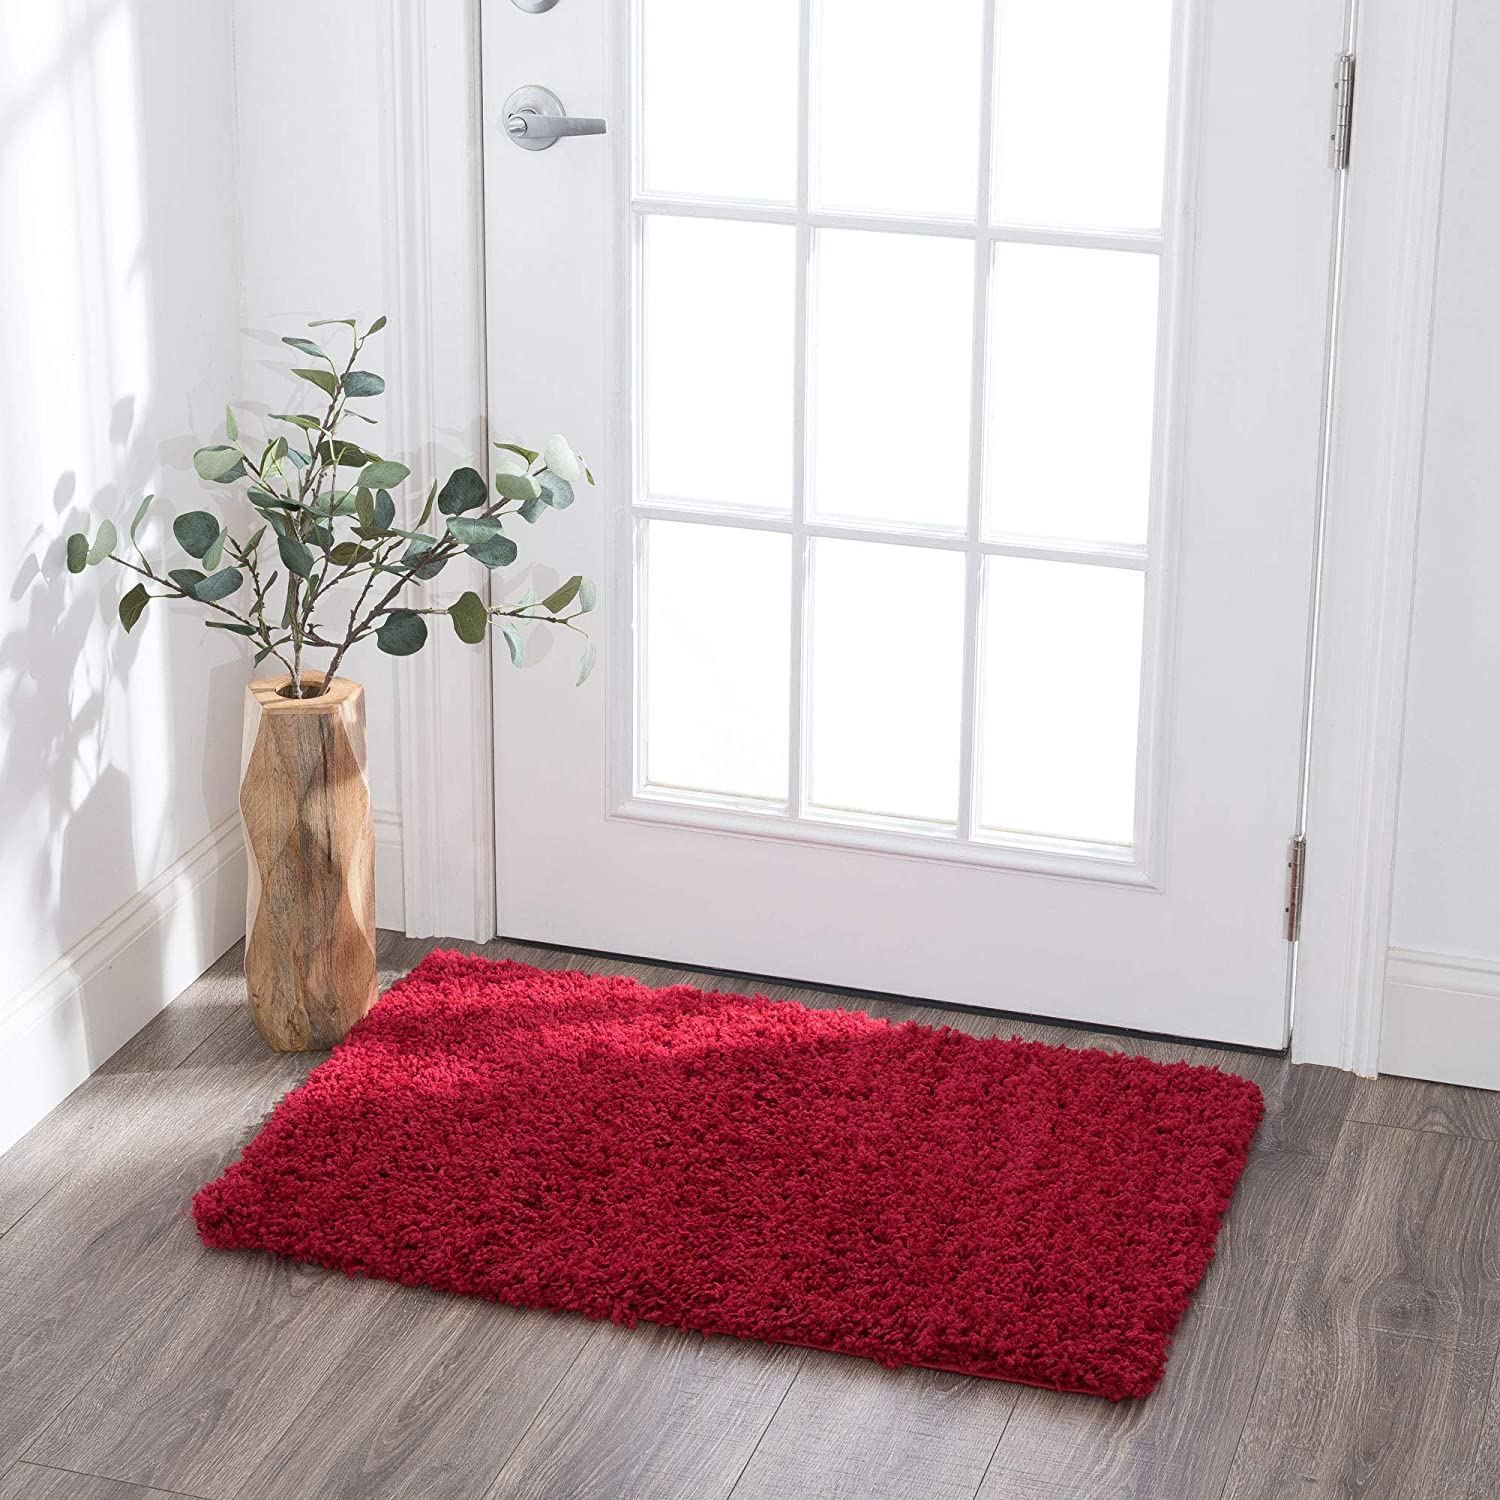 Alana NEW before selling Red 2x3 Shag Scatter Mat Gorgeous En Walkway Rug for Area Hallway